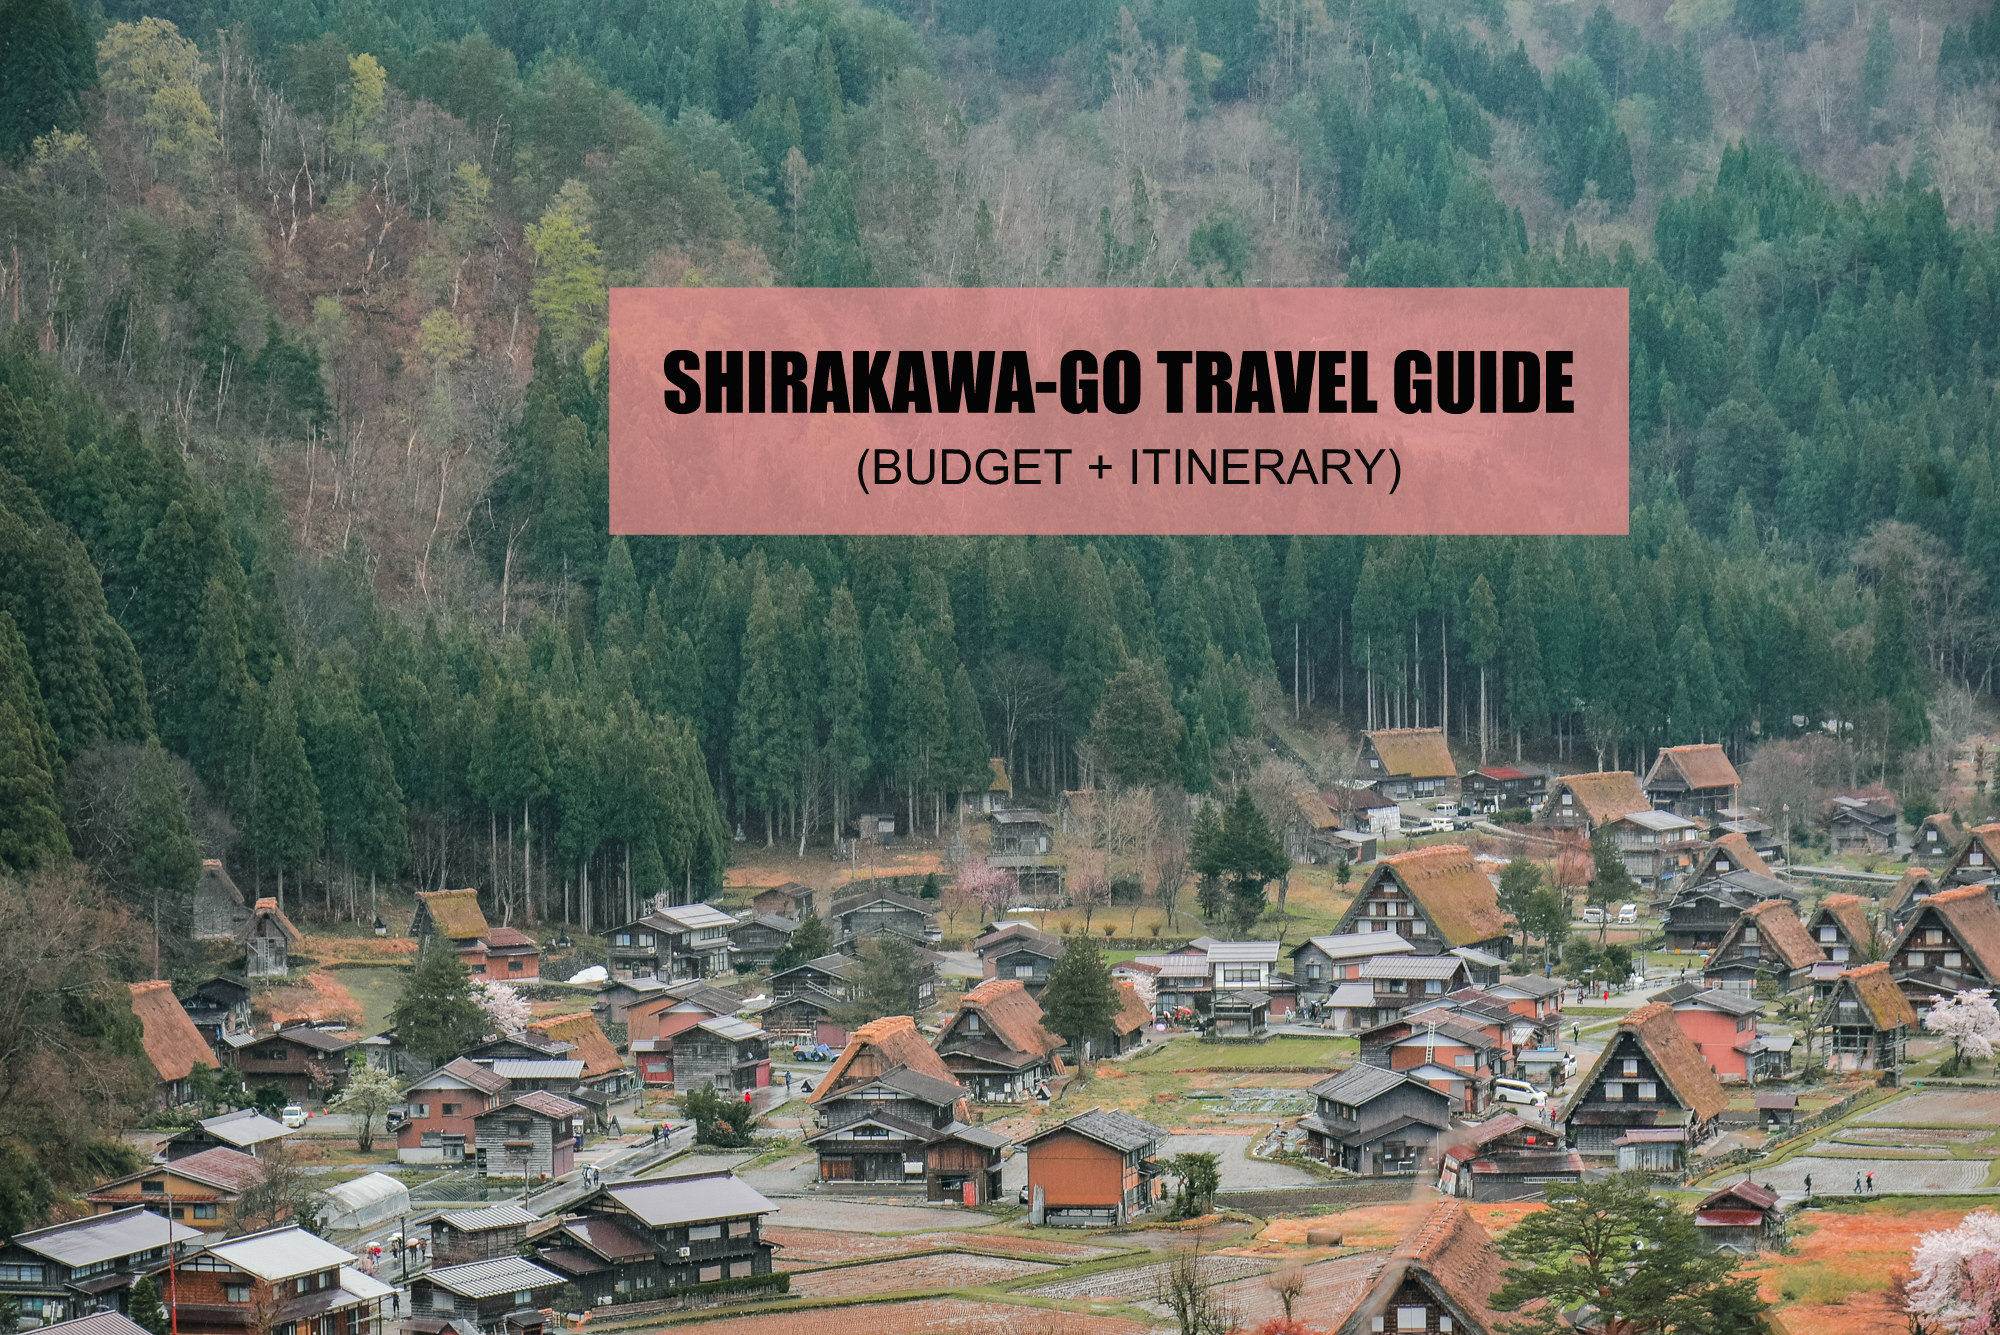 SHIRAKAWA-GO TRAVEL GUIDE (ITINERARY + BUDGET)